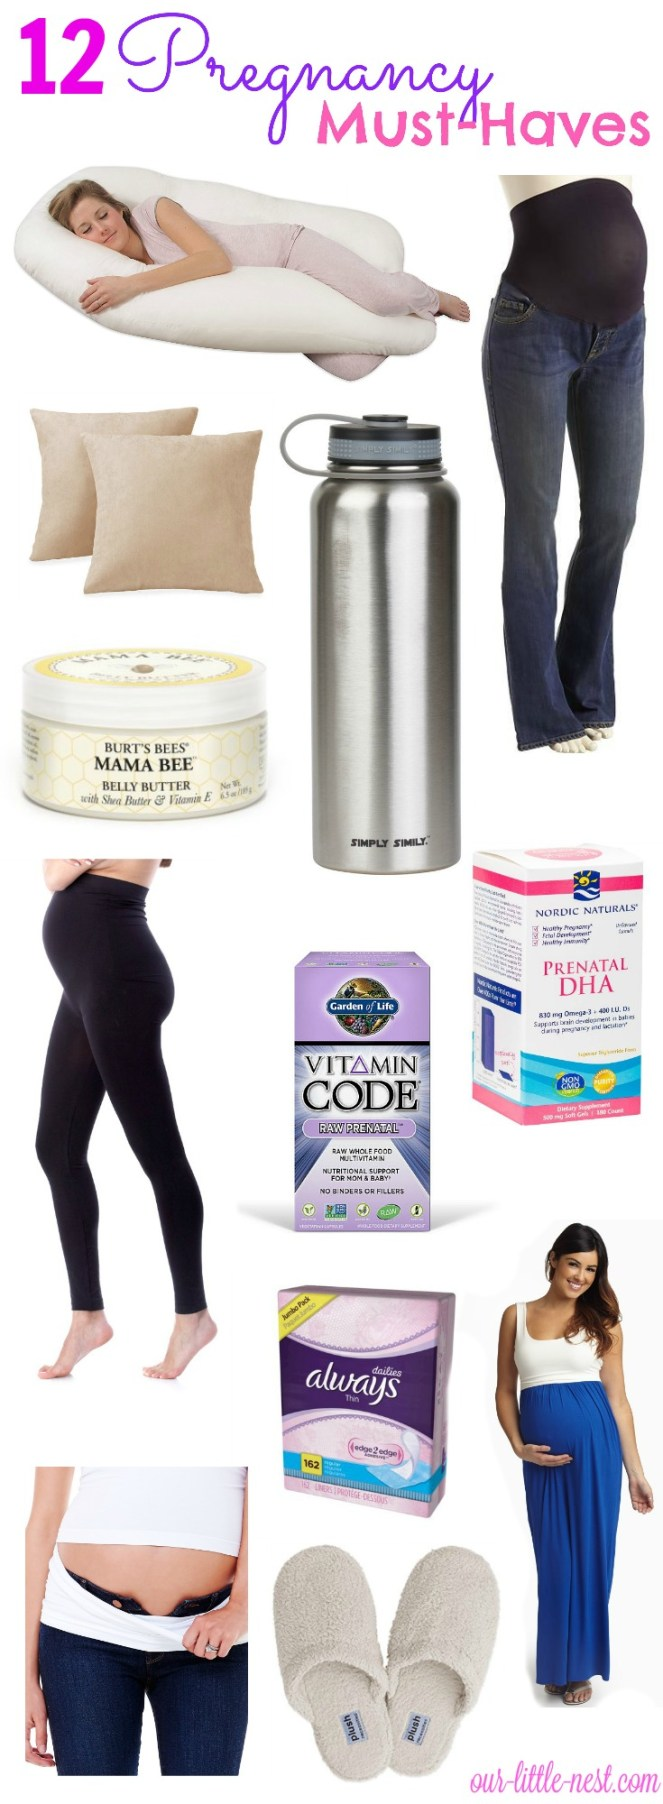 pregnancymust-haves